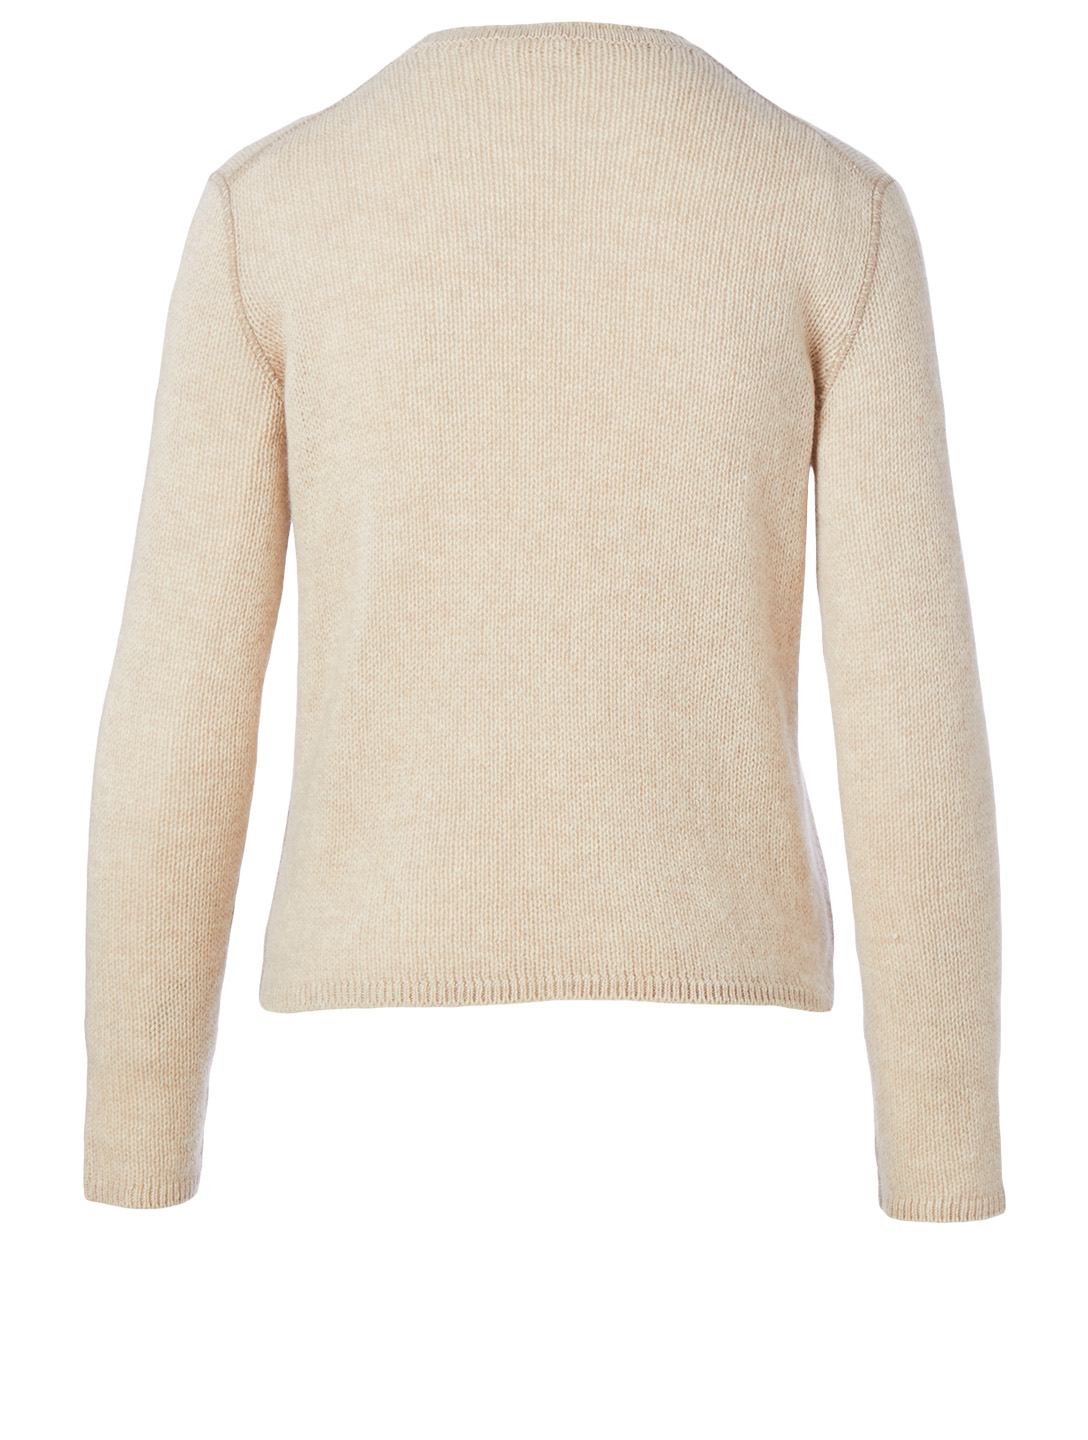 THE ROW Imani Cashmere Top Women's Brown